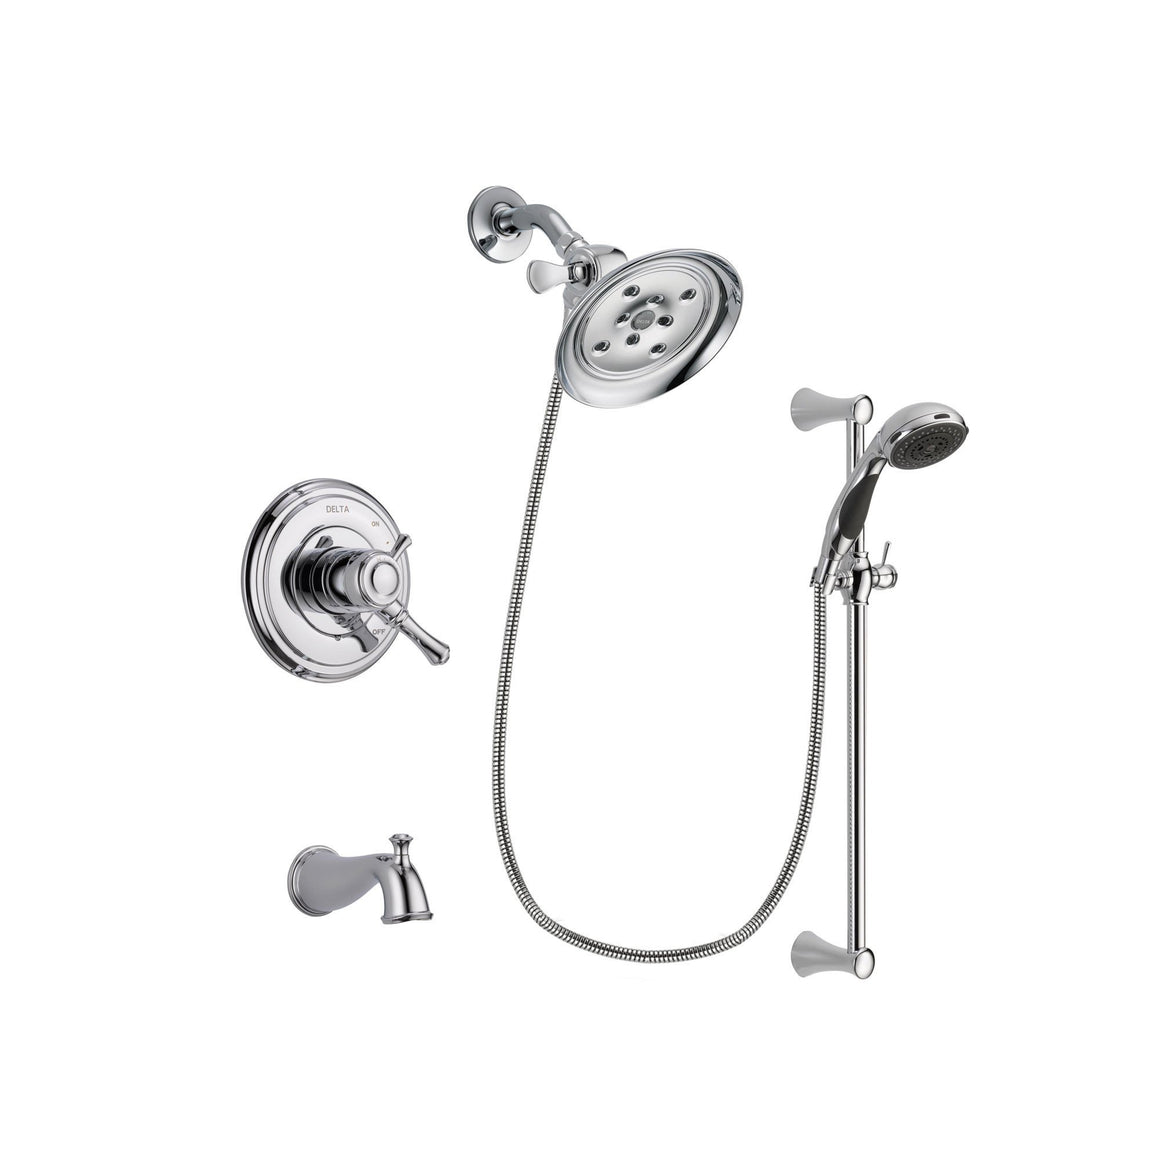 Easy Install Tub and Shower System Packages - Get a Hand Shower ...